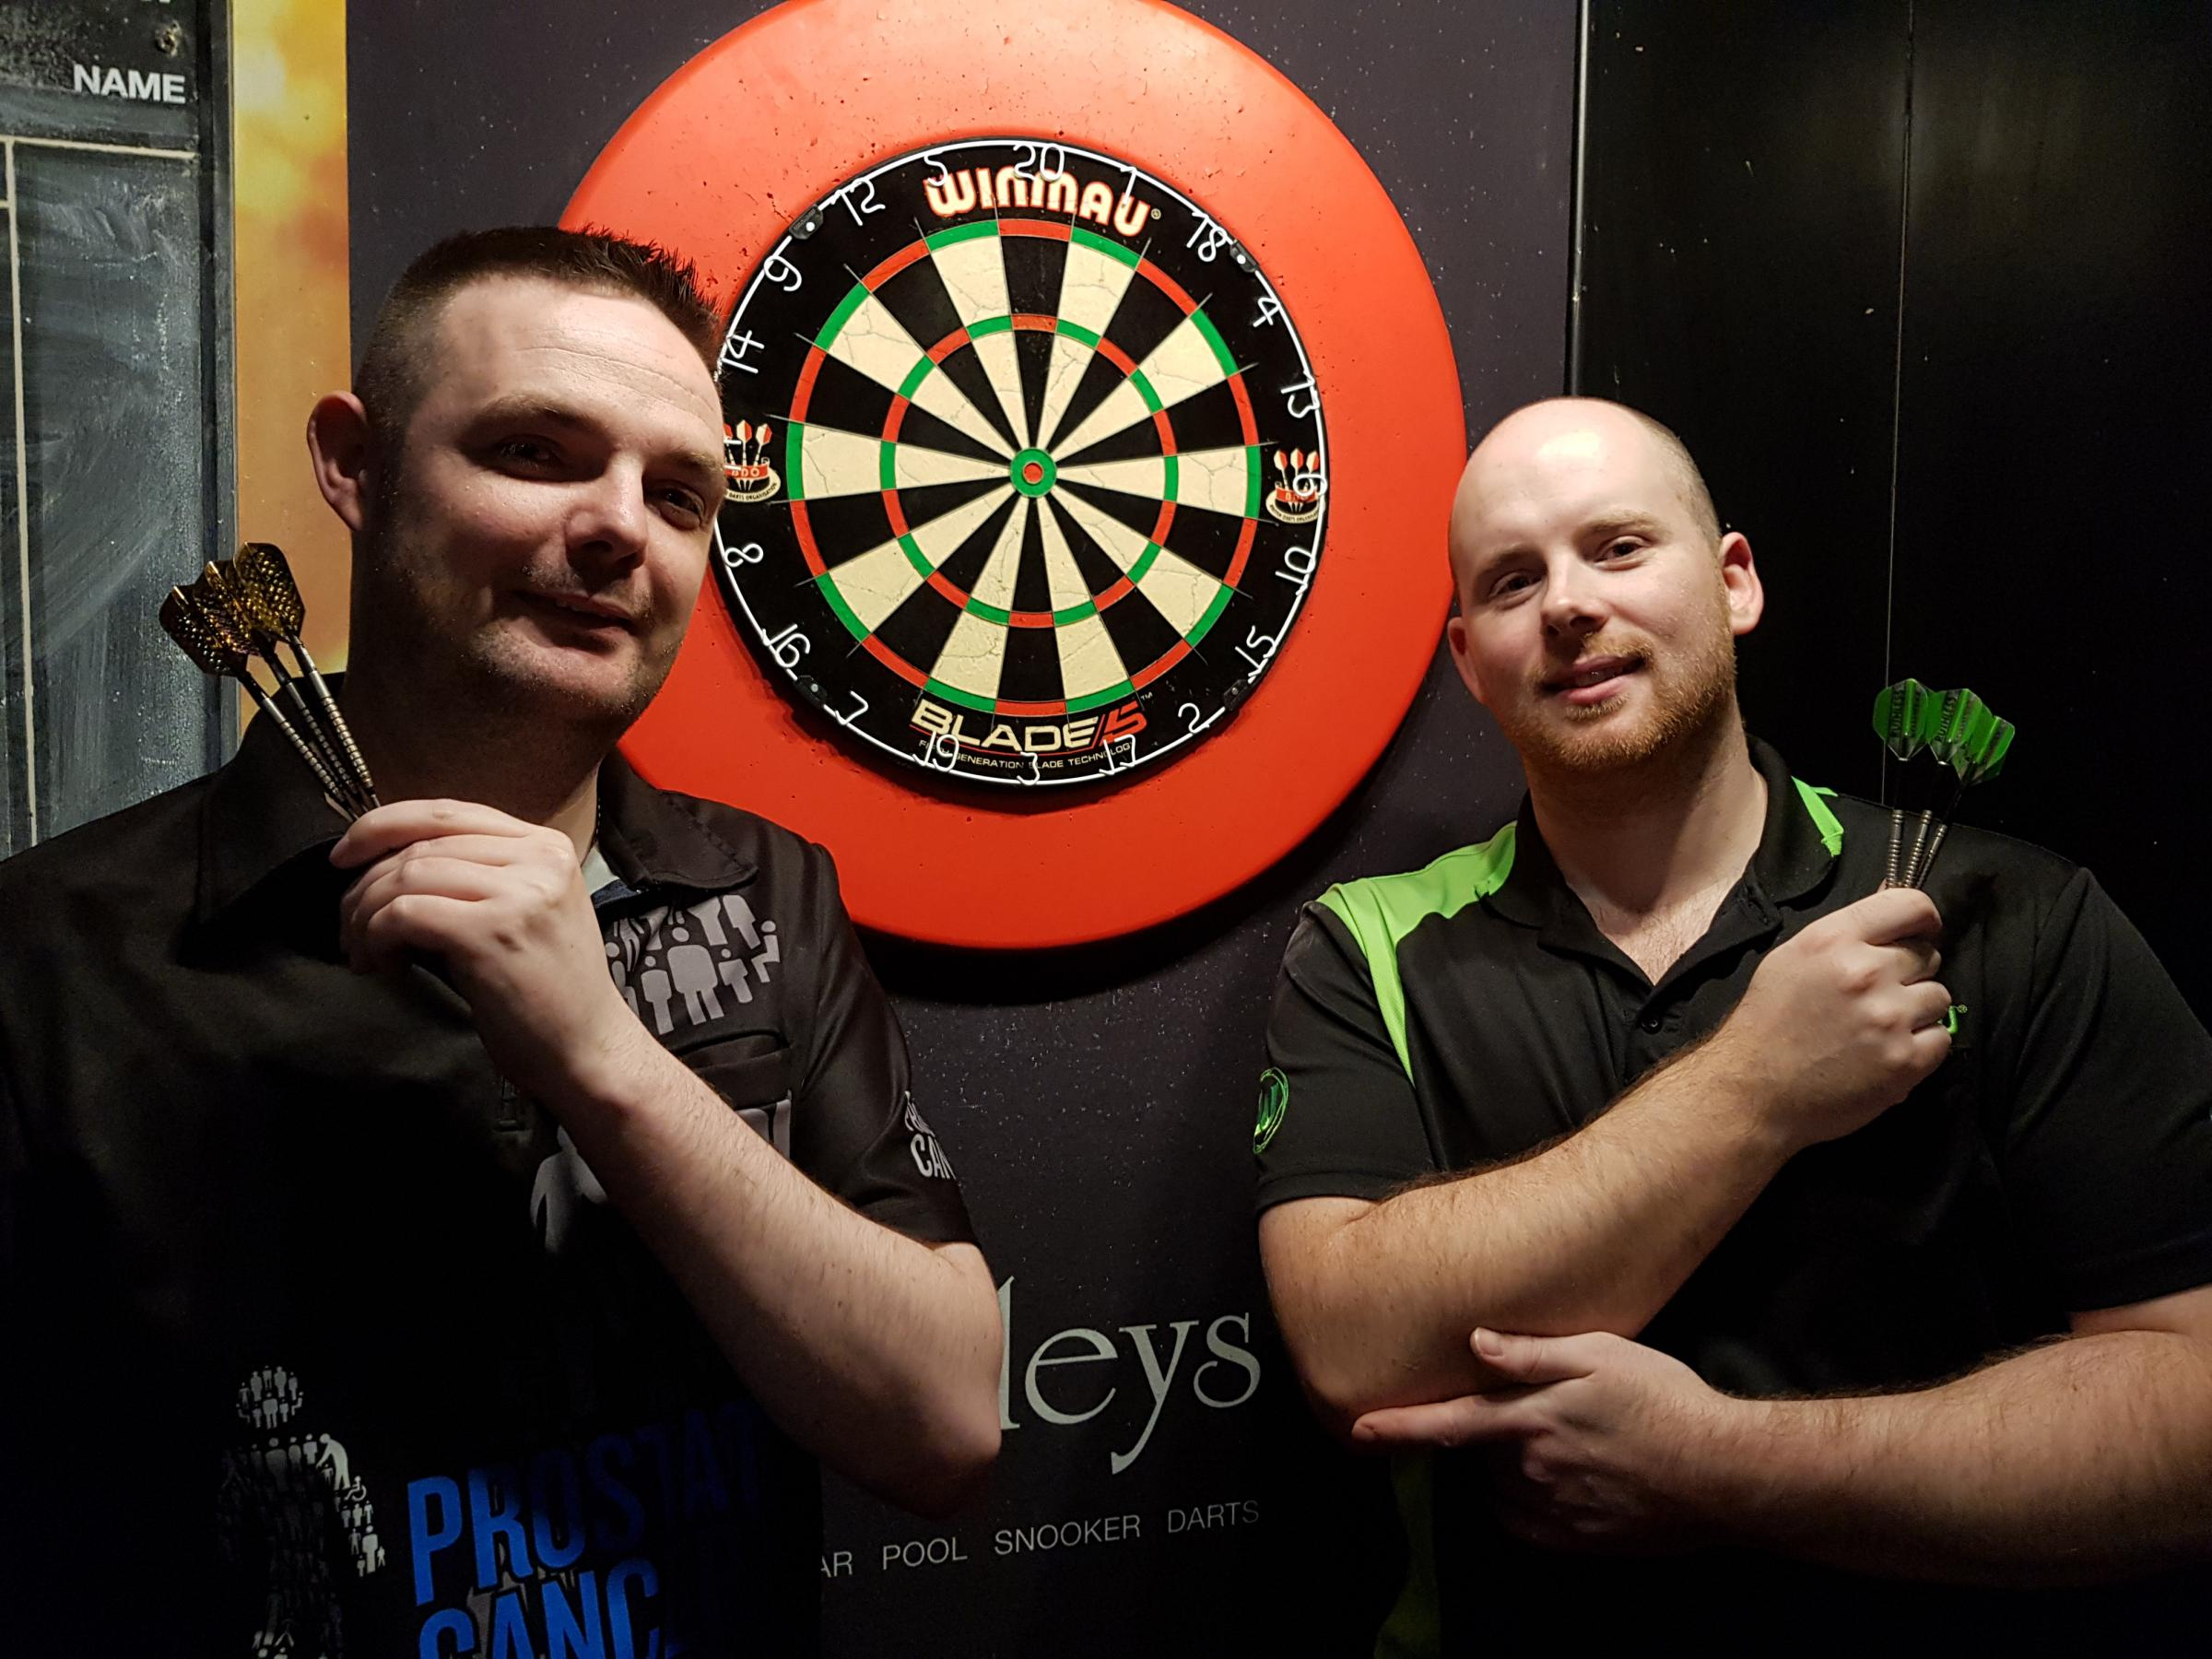 Dudley's Kelly and Cannock's Craddock fought their way to the last two to get their chance at glory at the 2018 UK Open